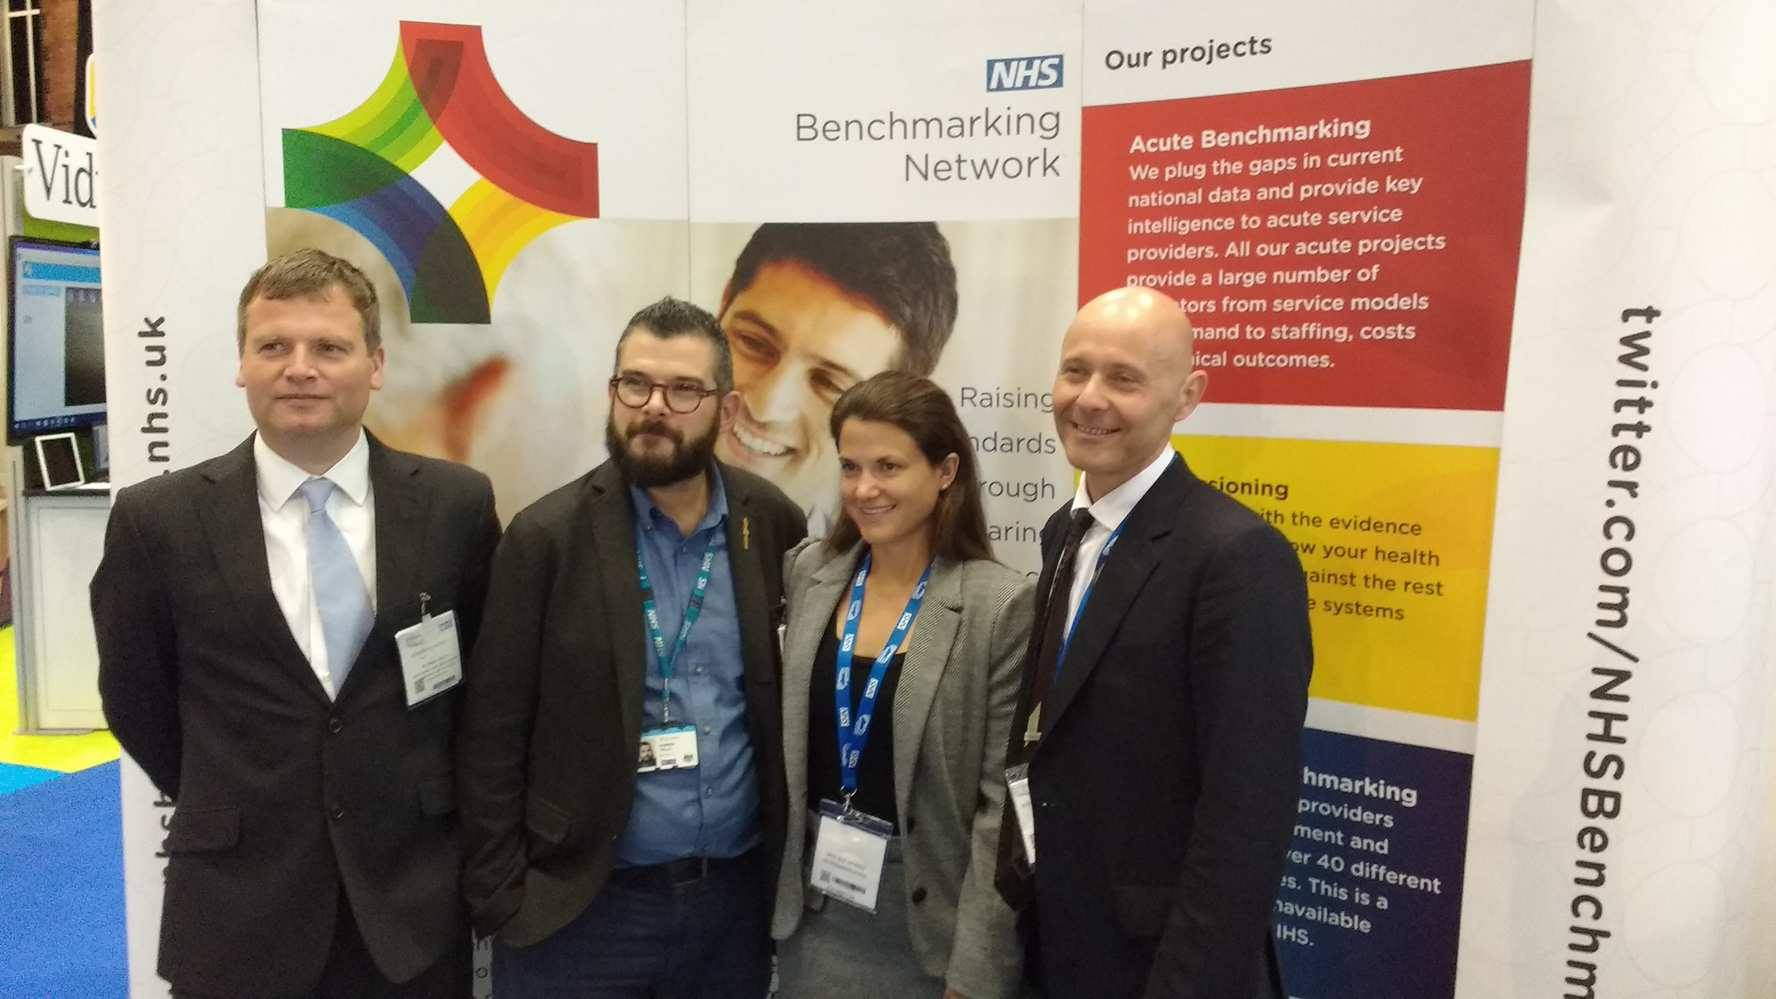 From Left to Right: George Howard (Healthy London Partnership), Darren Vella (Healthy London Partnership), Zoë Morris (NHS Benchmarking Network), Stephen Watkins (NHS Benchmarking Network)